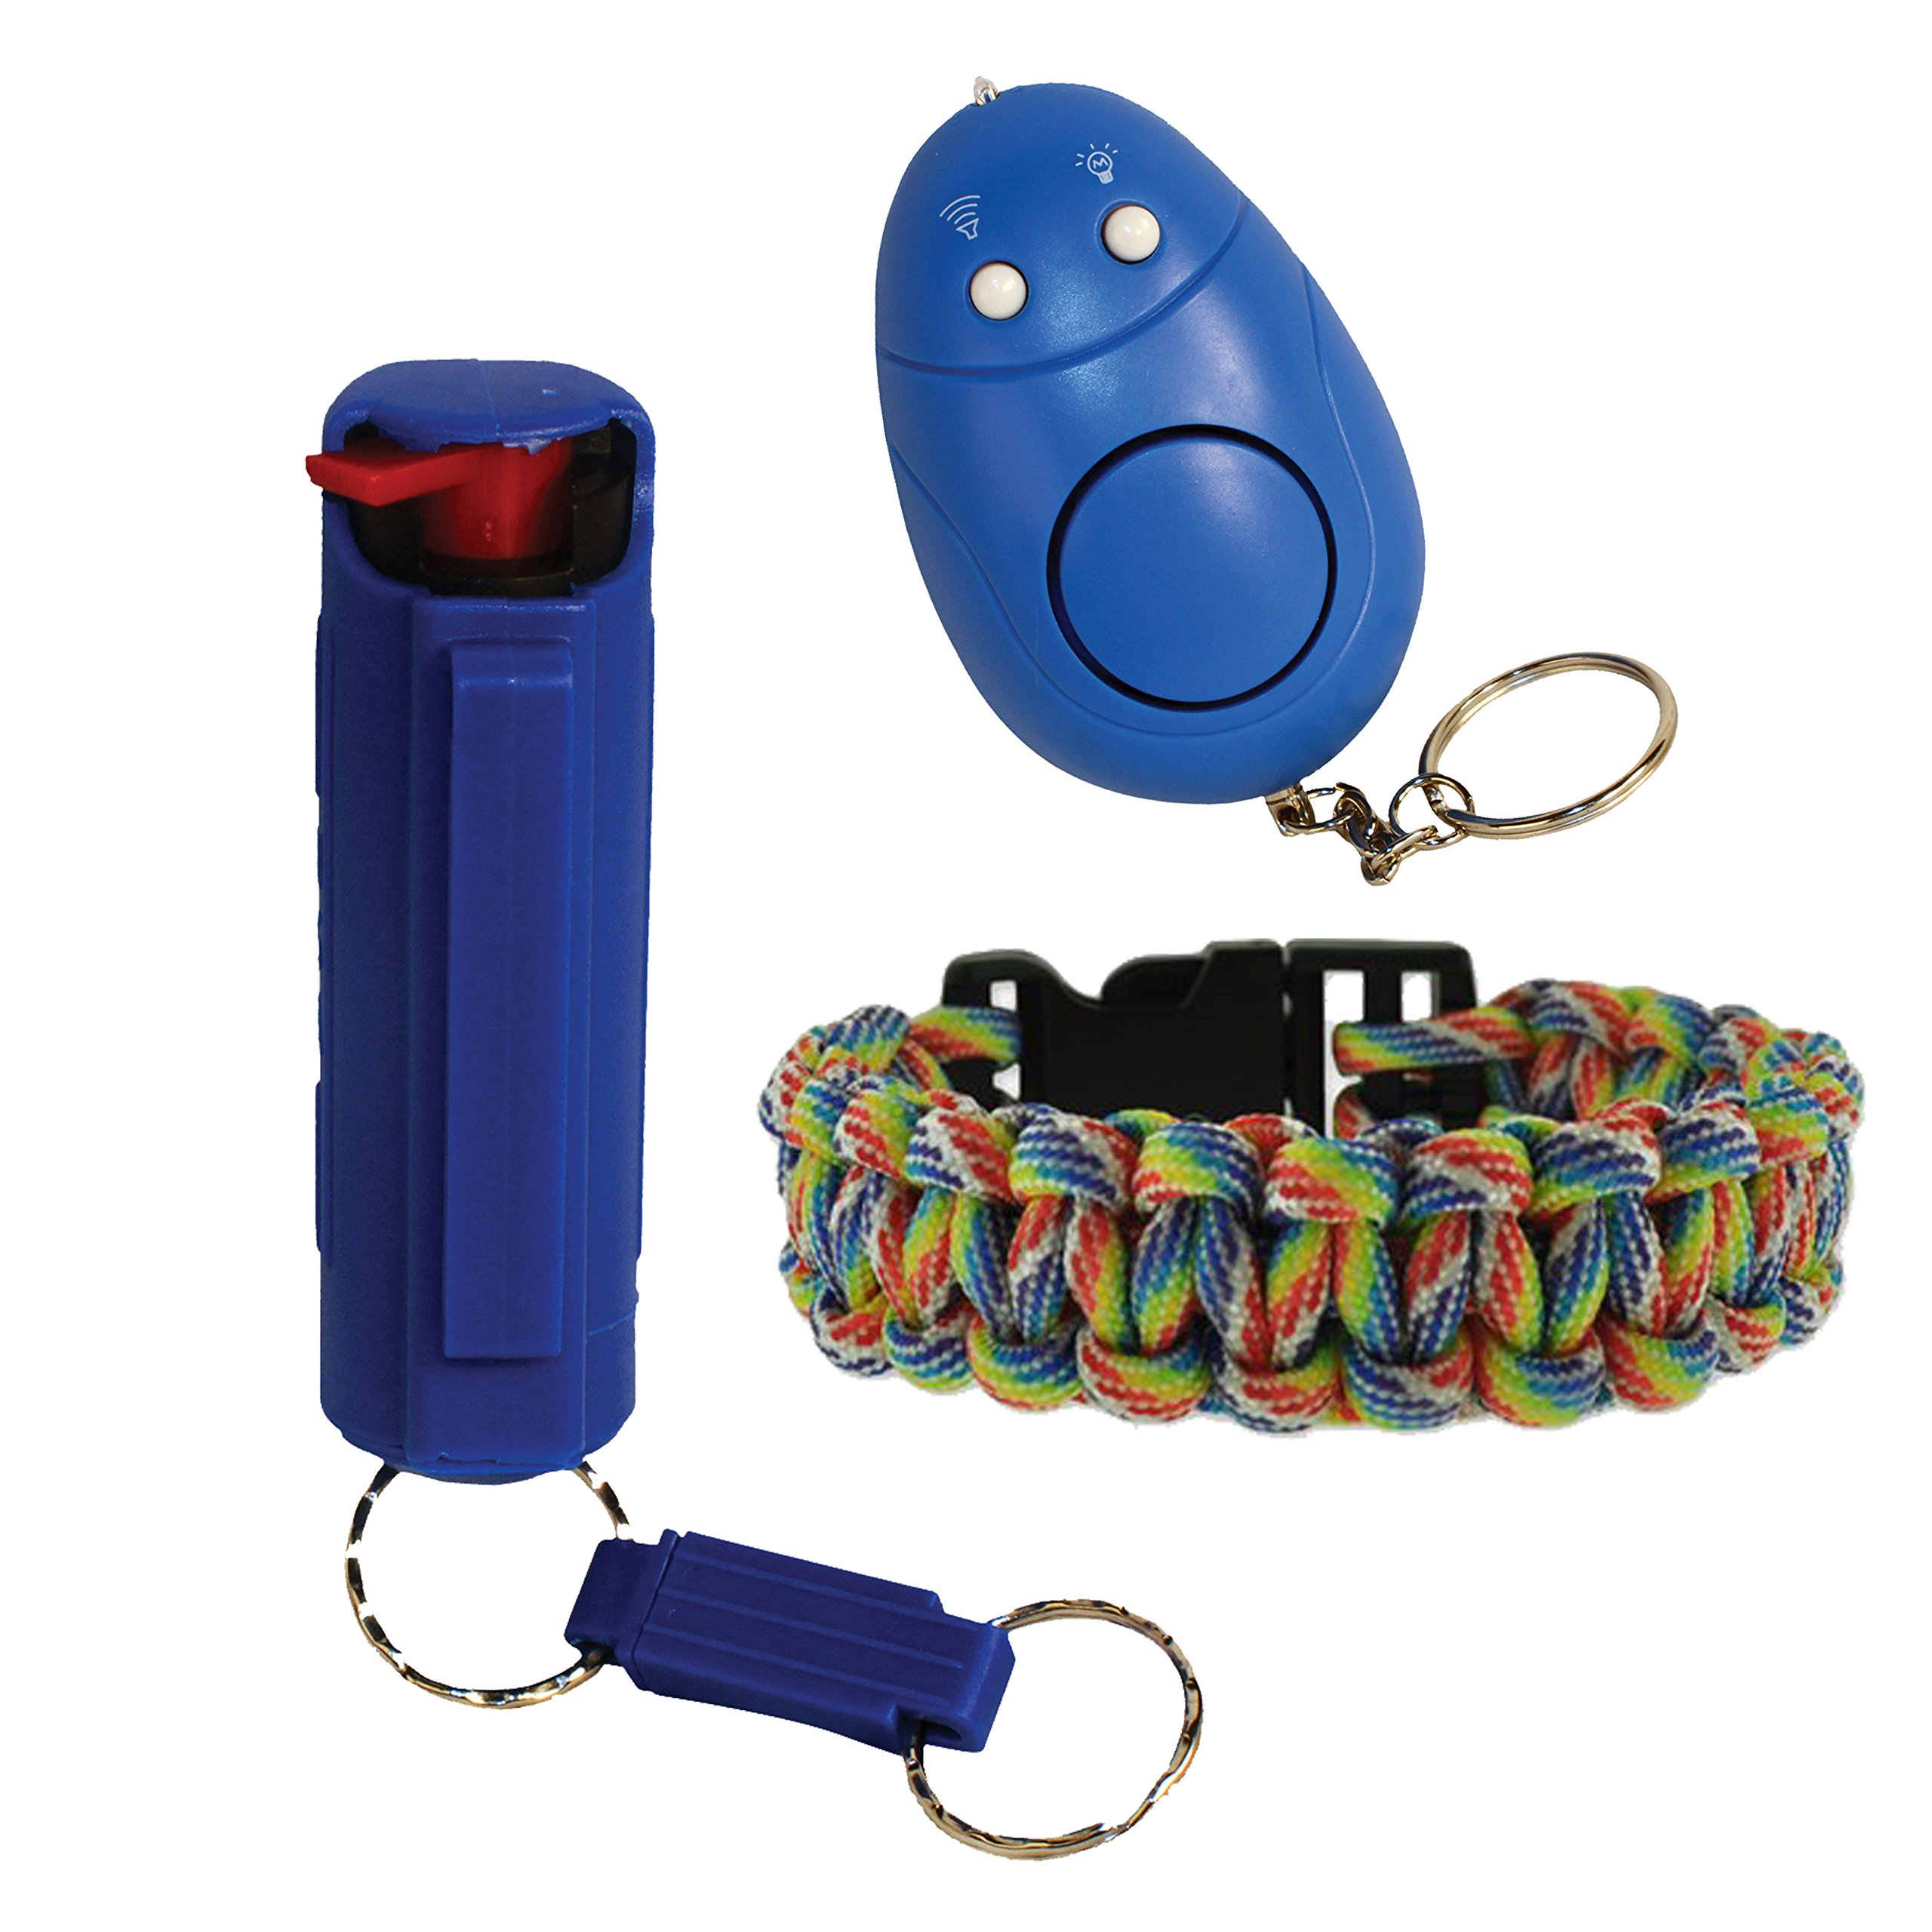 Pepper Shot College Safety Bundle 1/2 10% Pepper Spray, Multi Color Paracord Bracelet and a Personal Alarm - Lot of 3 as Shown